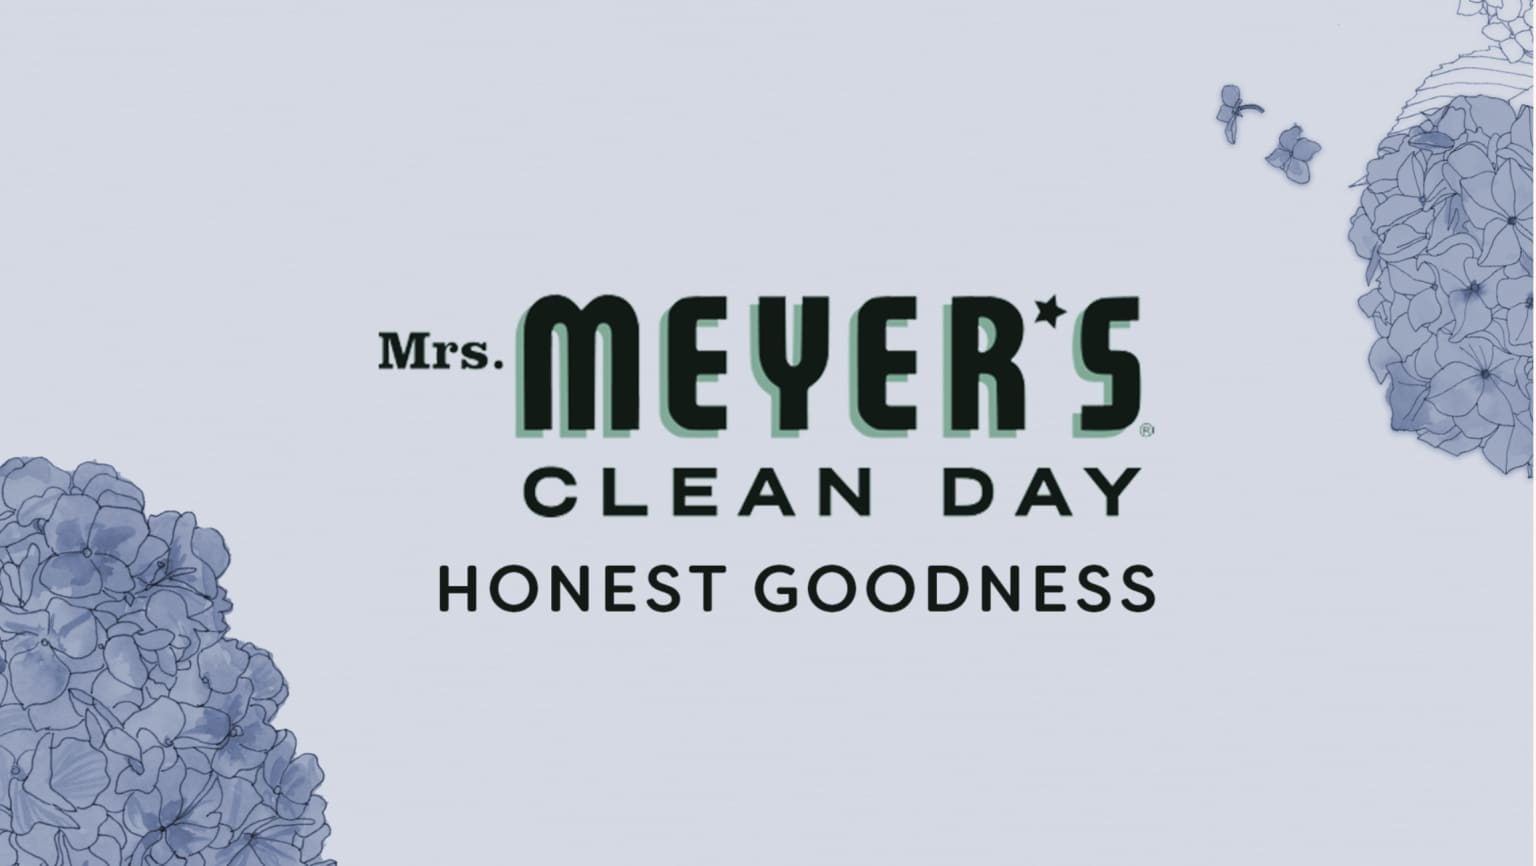 Mrs. Meyer's - Honest Goodness